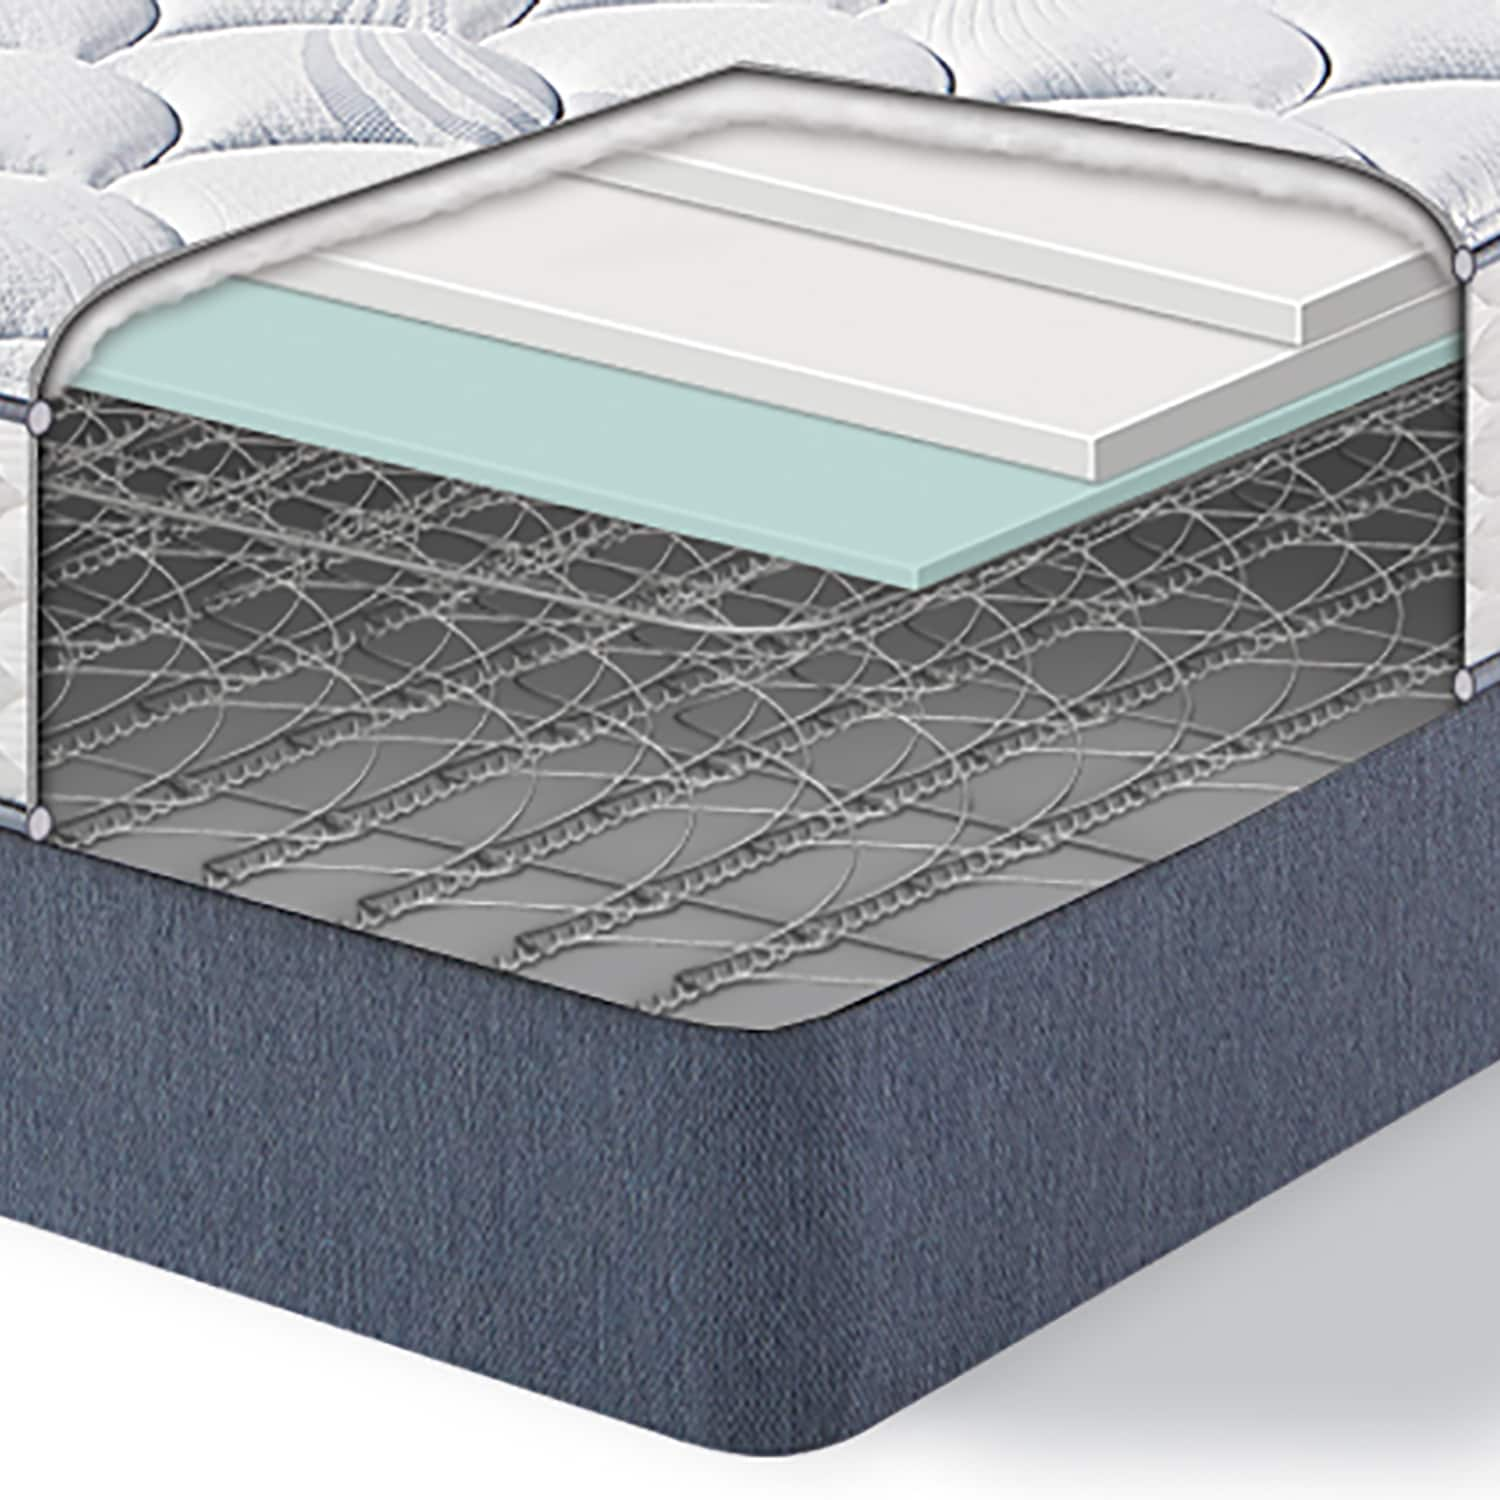 txl number set products blue item icomfort adjustable queen firm serta mattress fusion hybrid